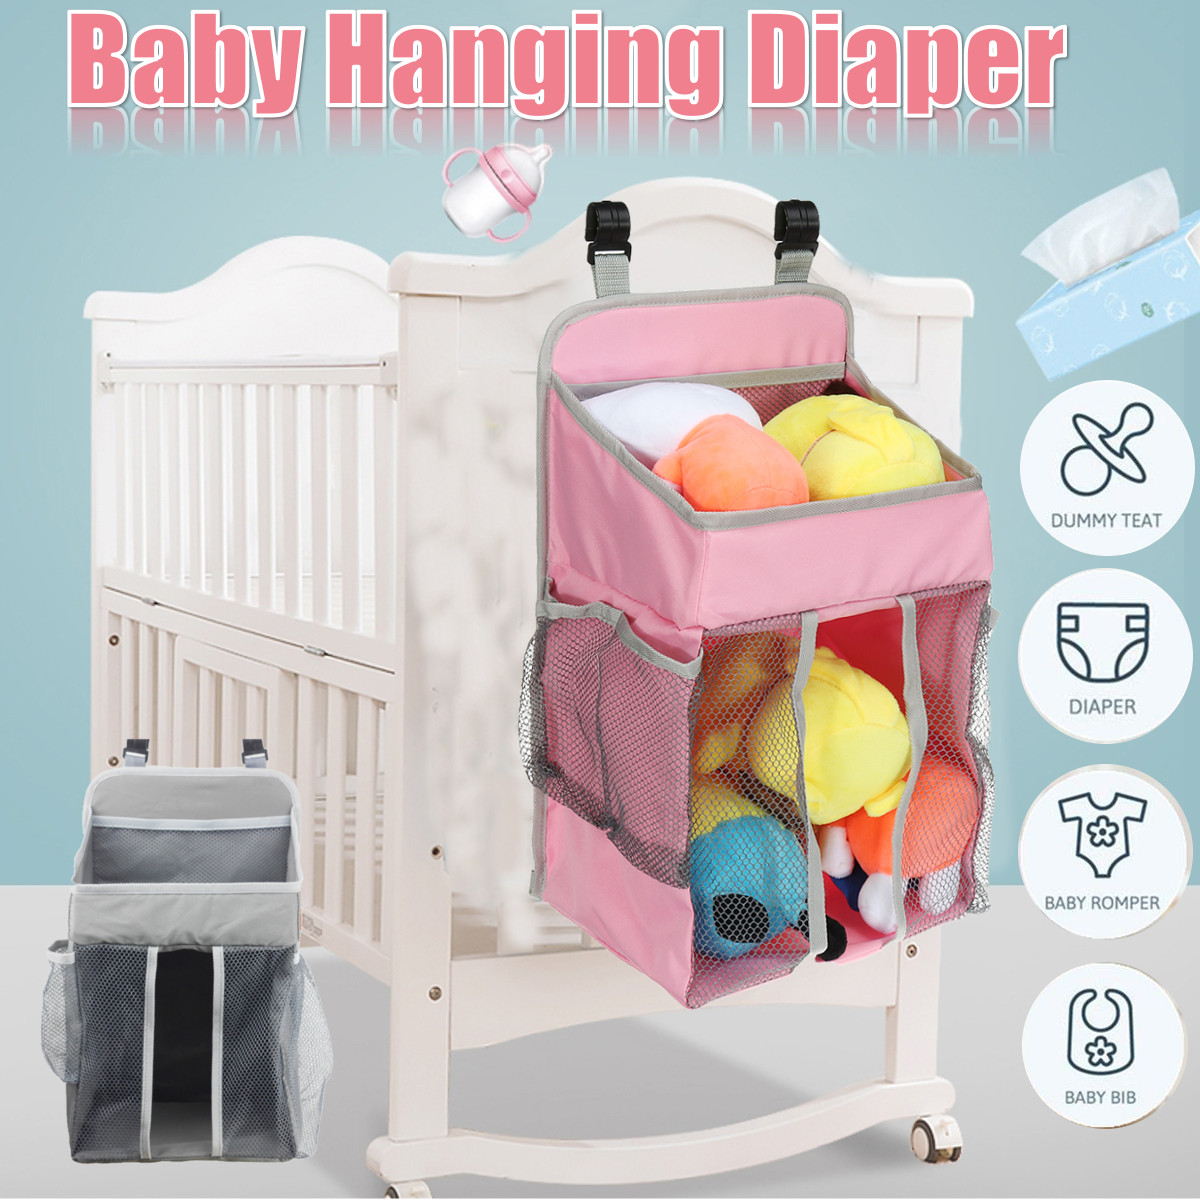 New Baby Nursery Hanging Organiser Tidy Storage Nappies Changing Holder Set  Bed